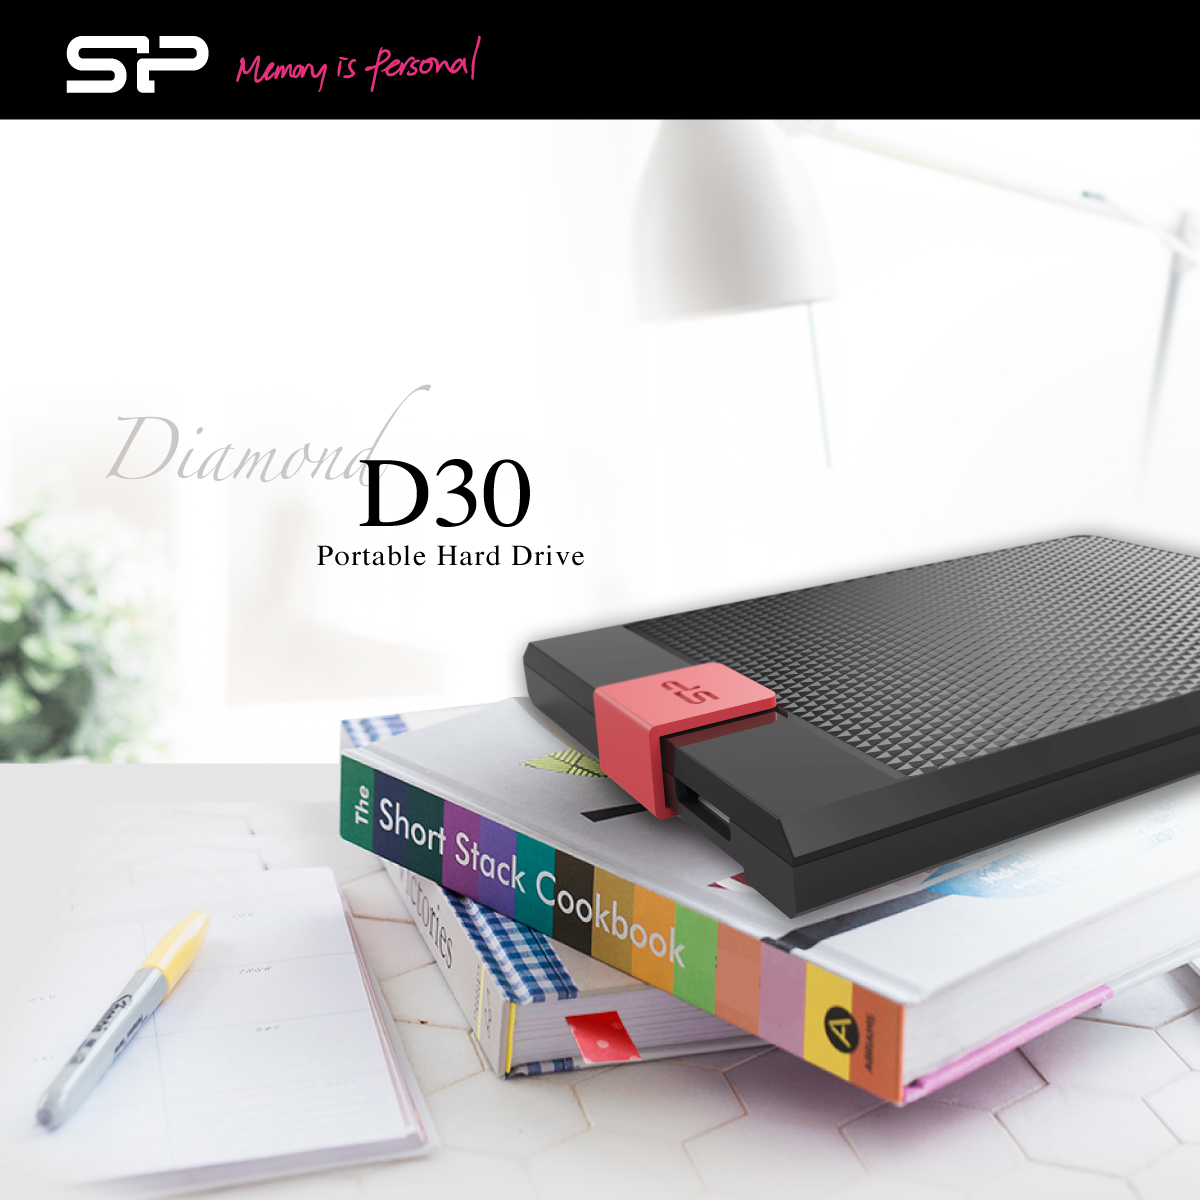 Book Love Gone Digital - SP/ Silicon Power Releases New Portable Hard Drive Diamond D30